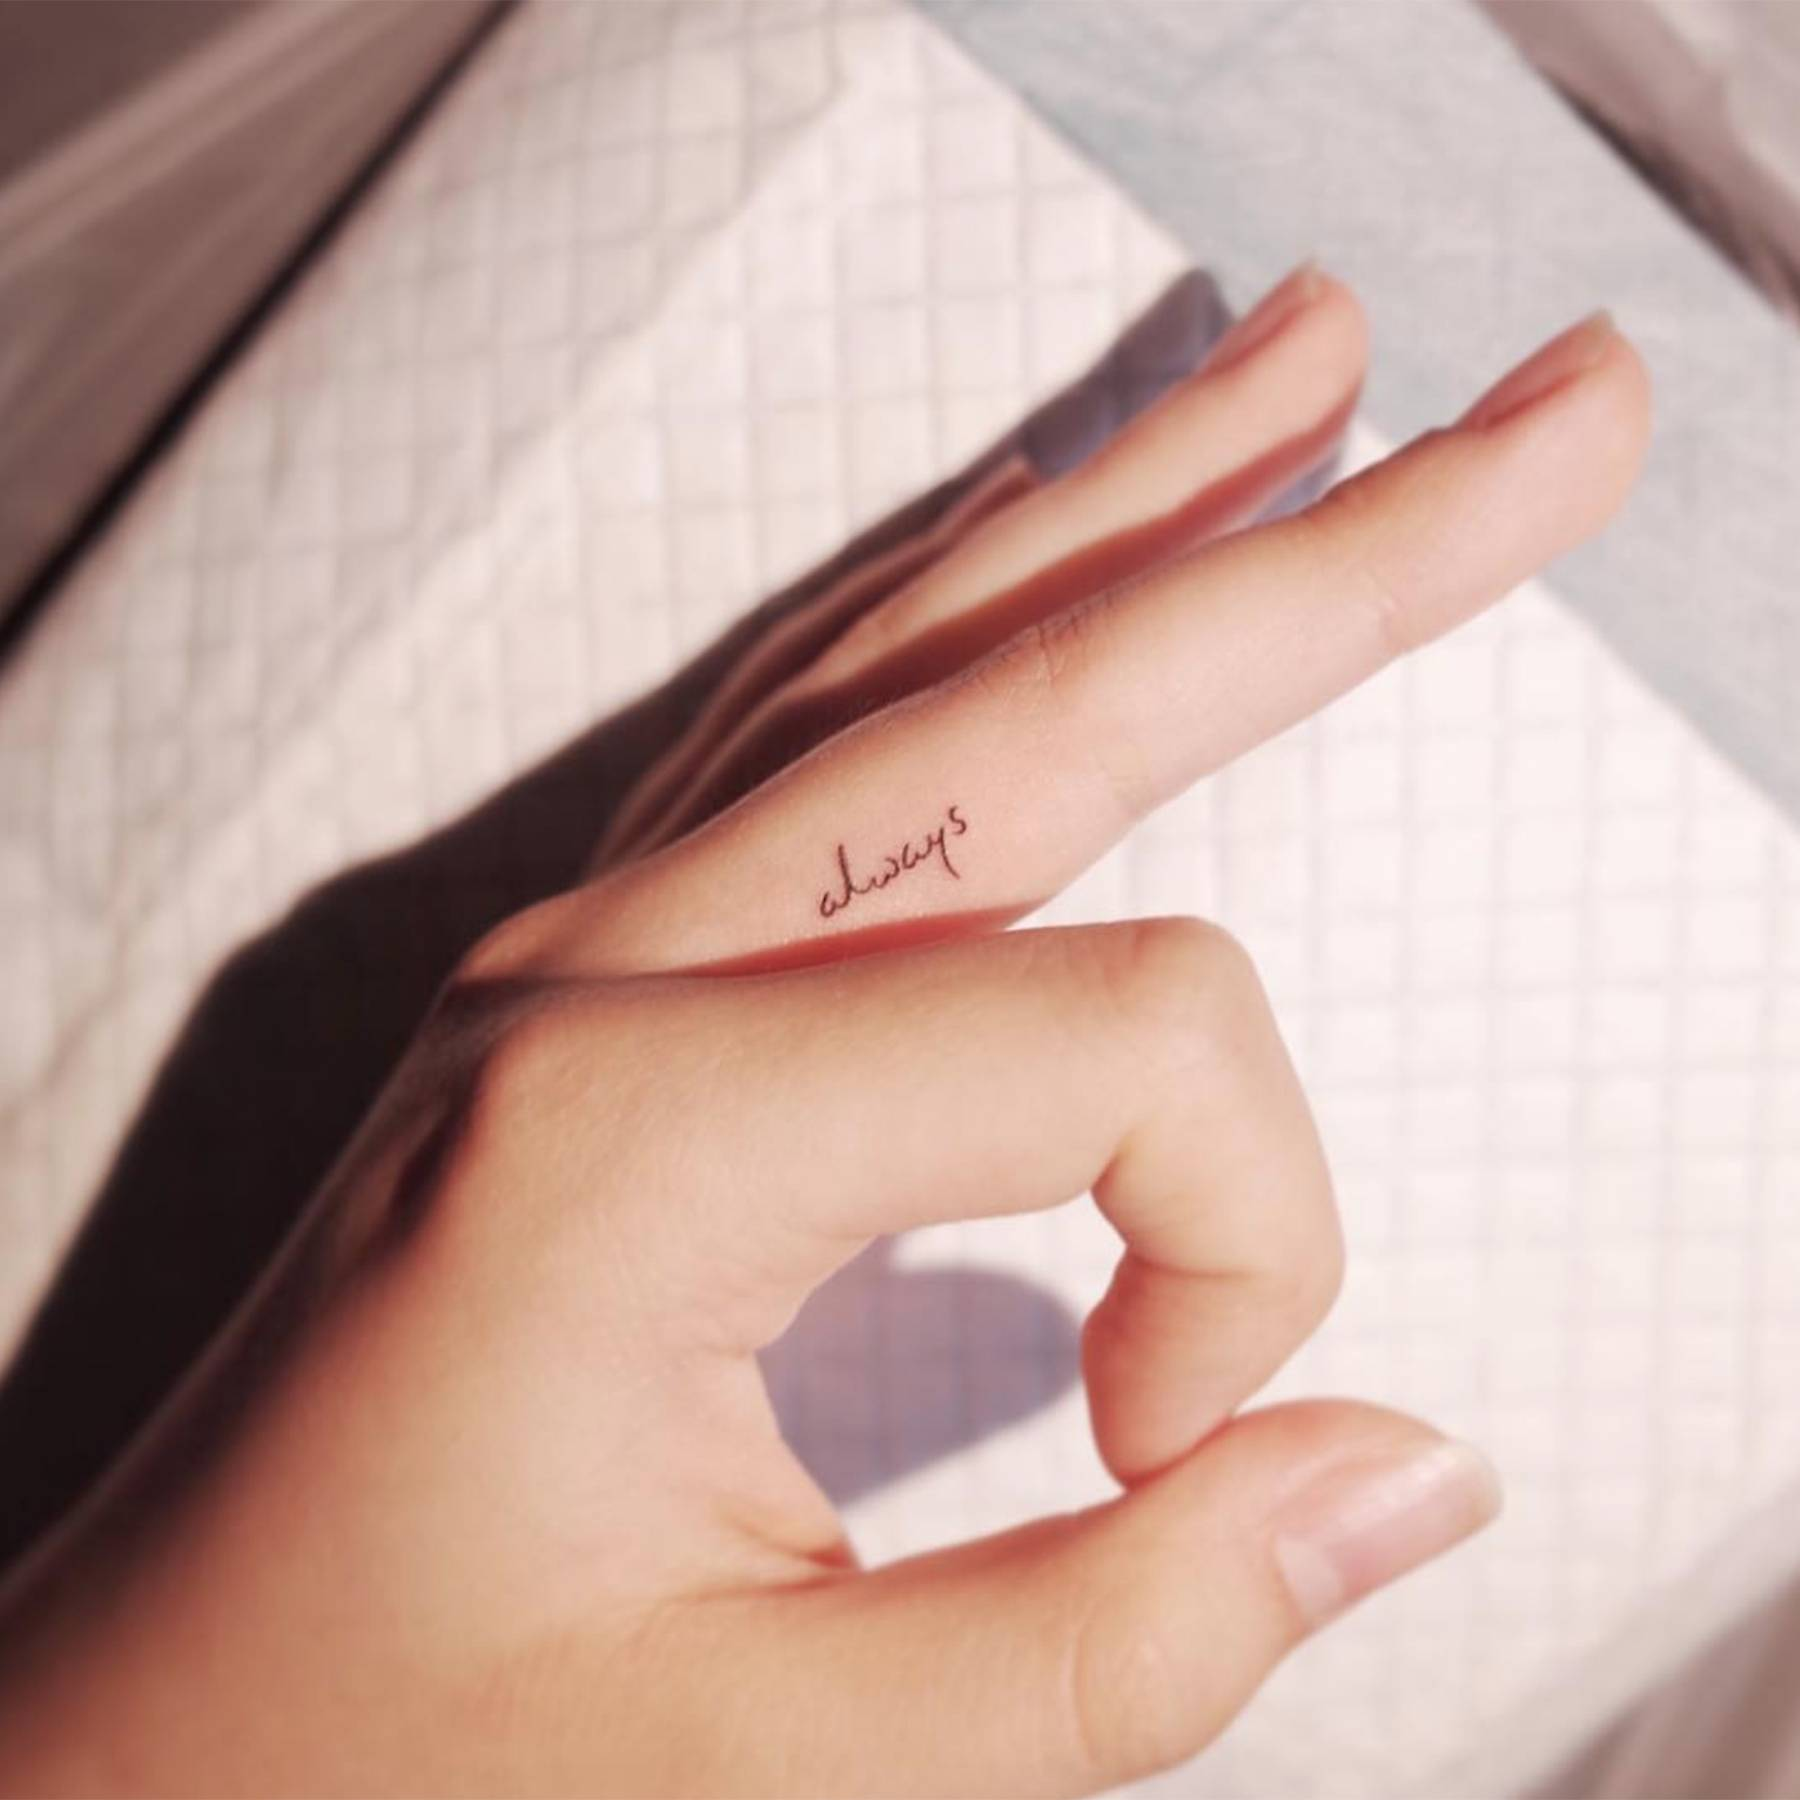 Finger Tattoo Designs Inspiration From Delicate To Daring